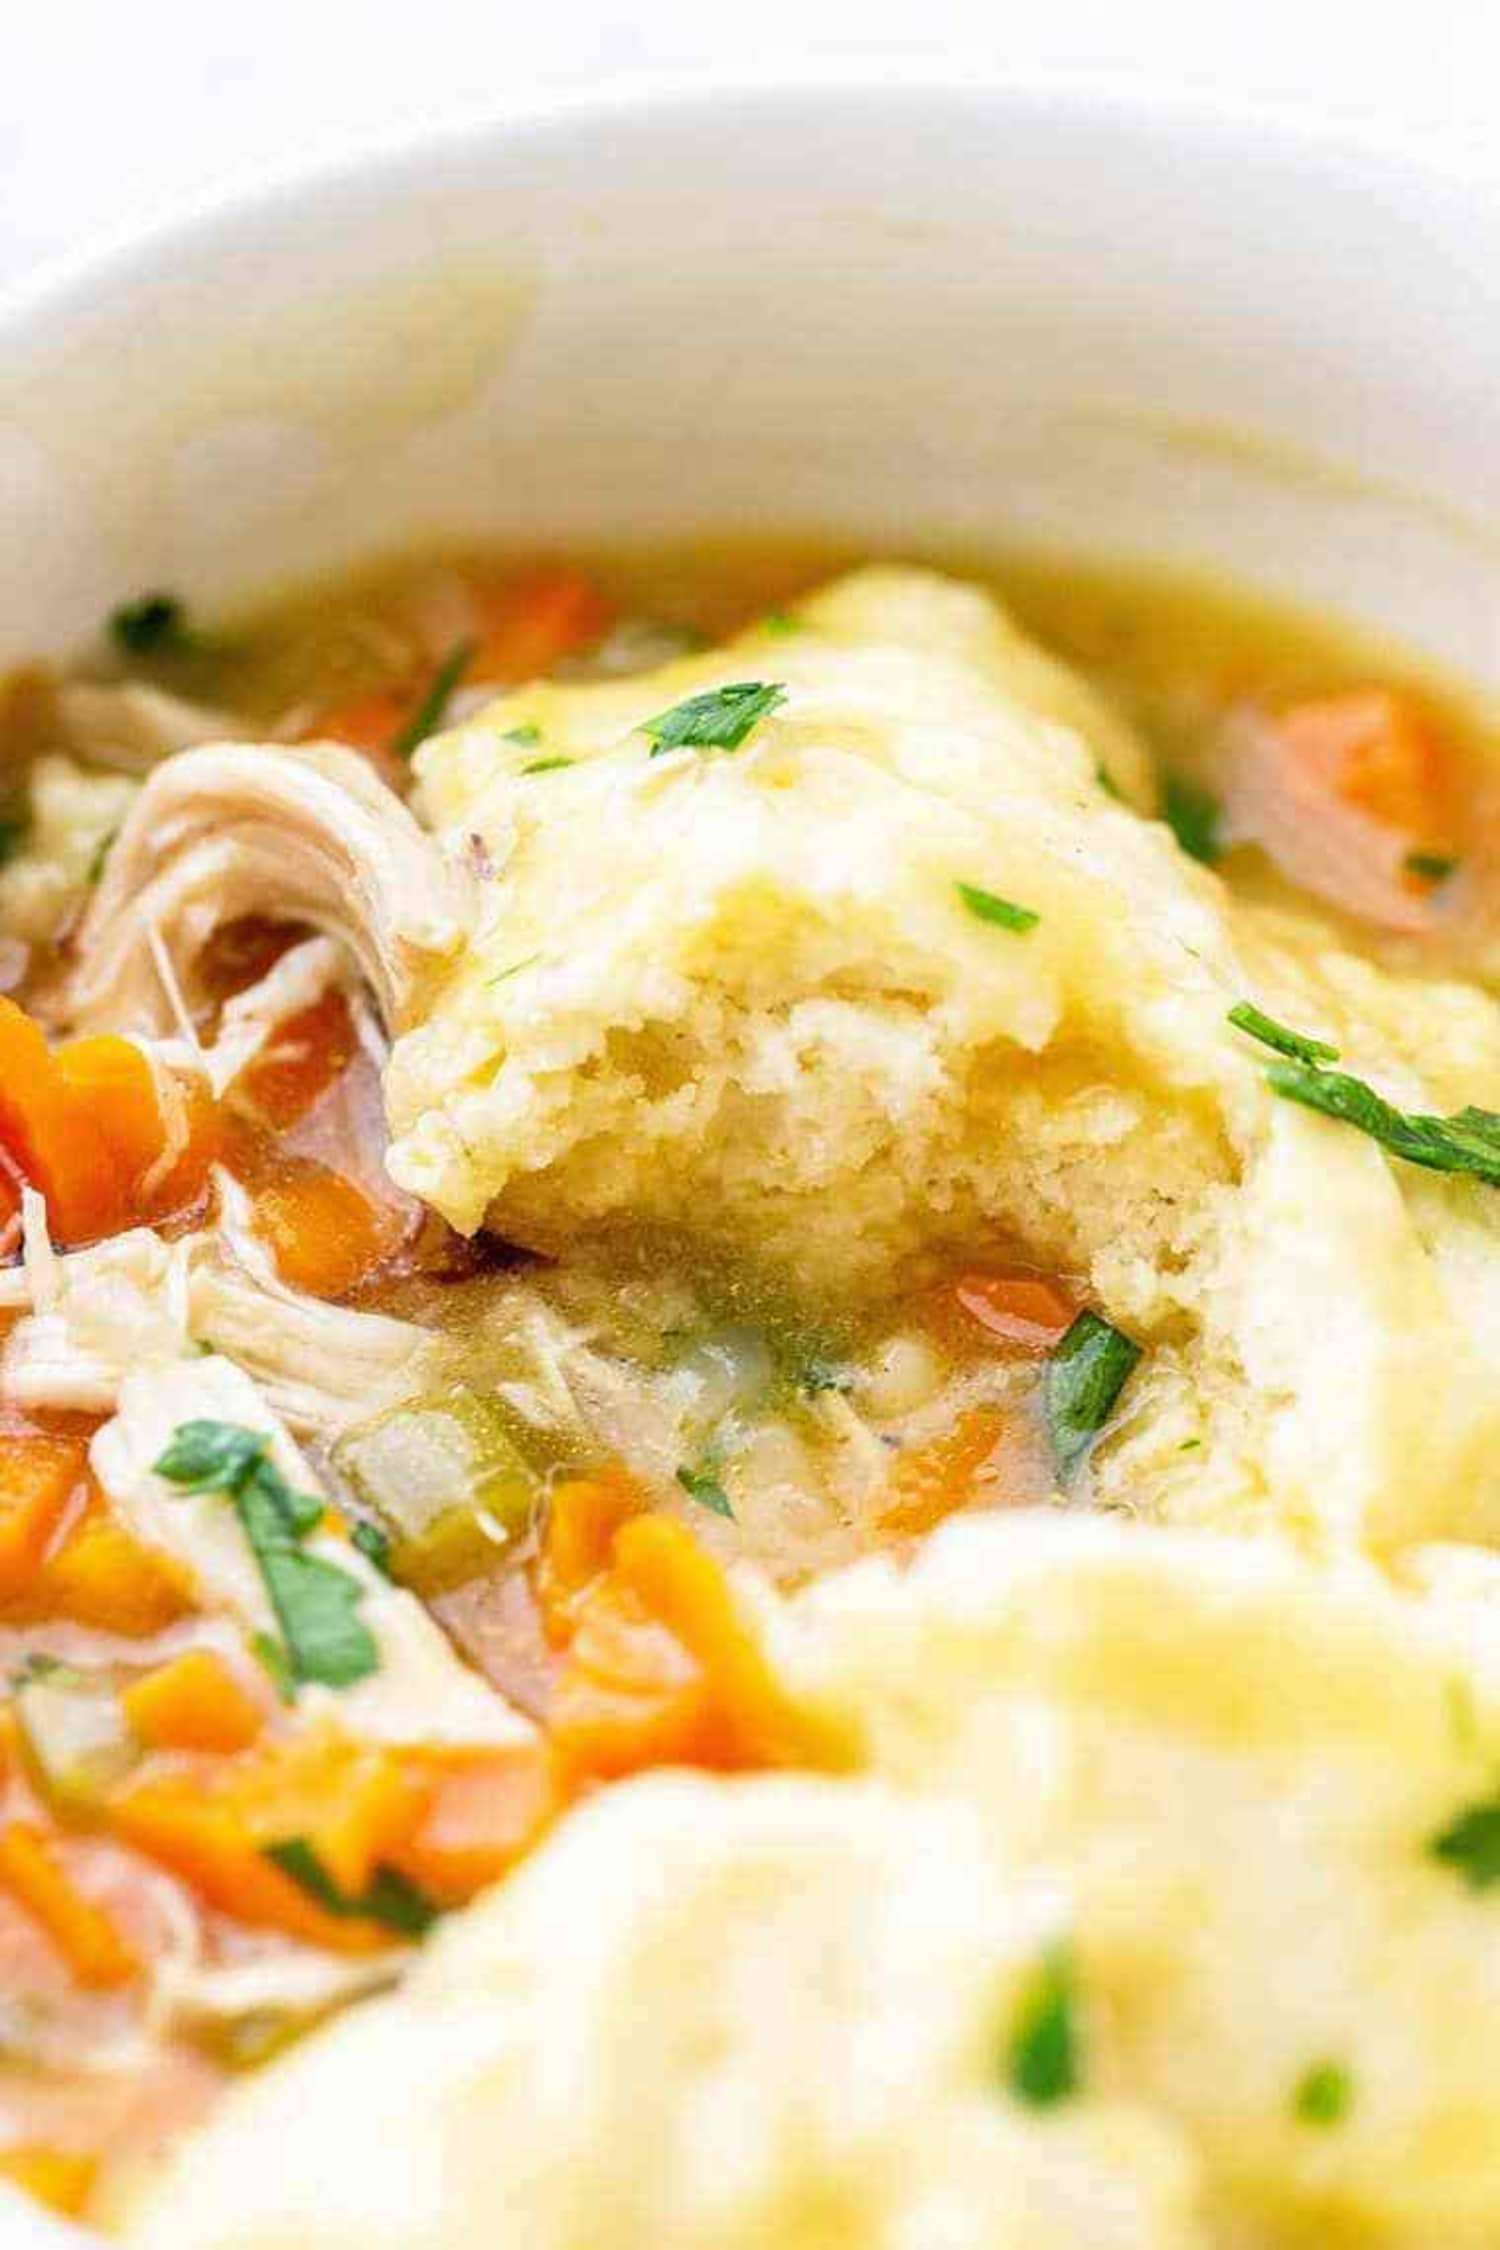 Make Southern Chicken and Dumplings If You Want to Feel Cozy